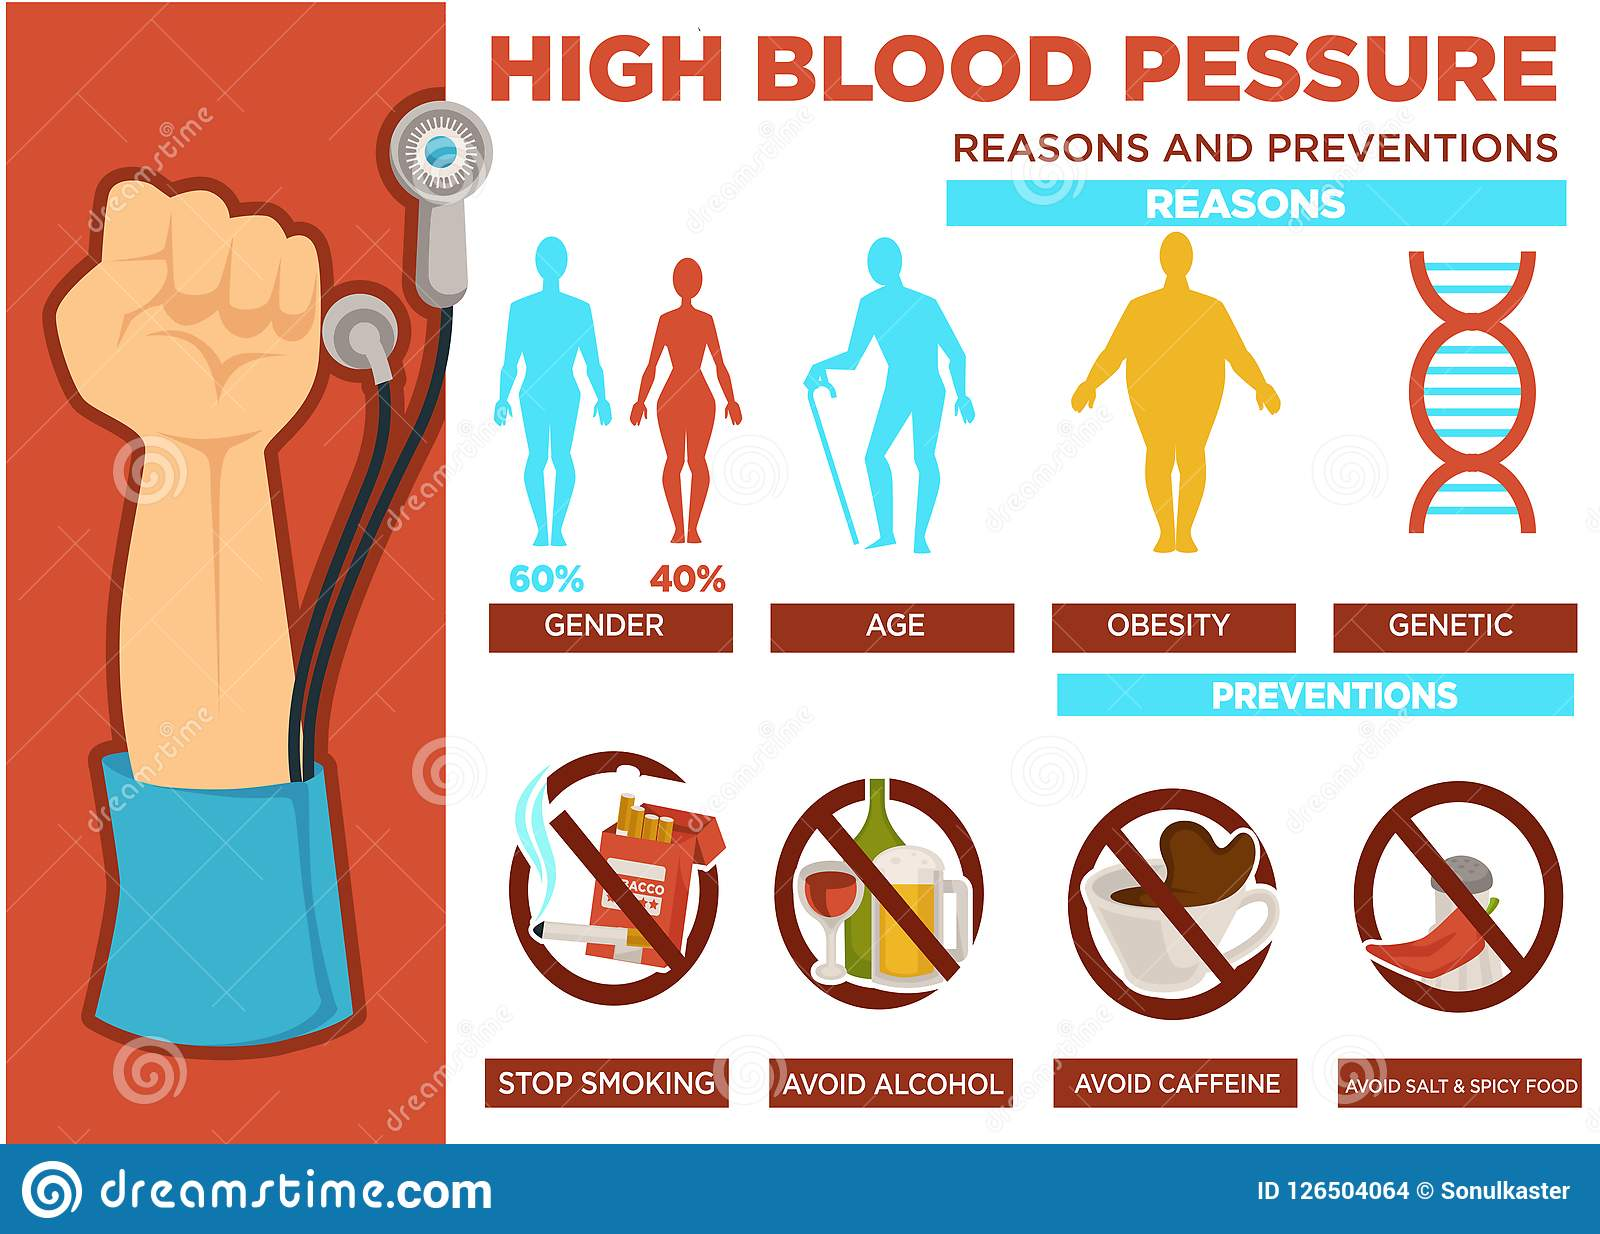 High Blood Pressure Reasons And Prevention Poster Vector Stock Vector Illustration Of Care High 126504064